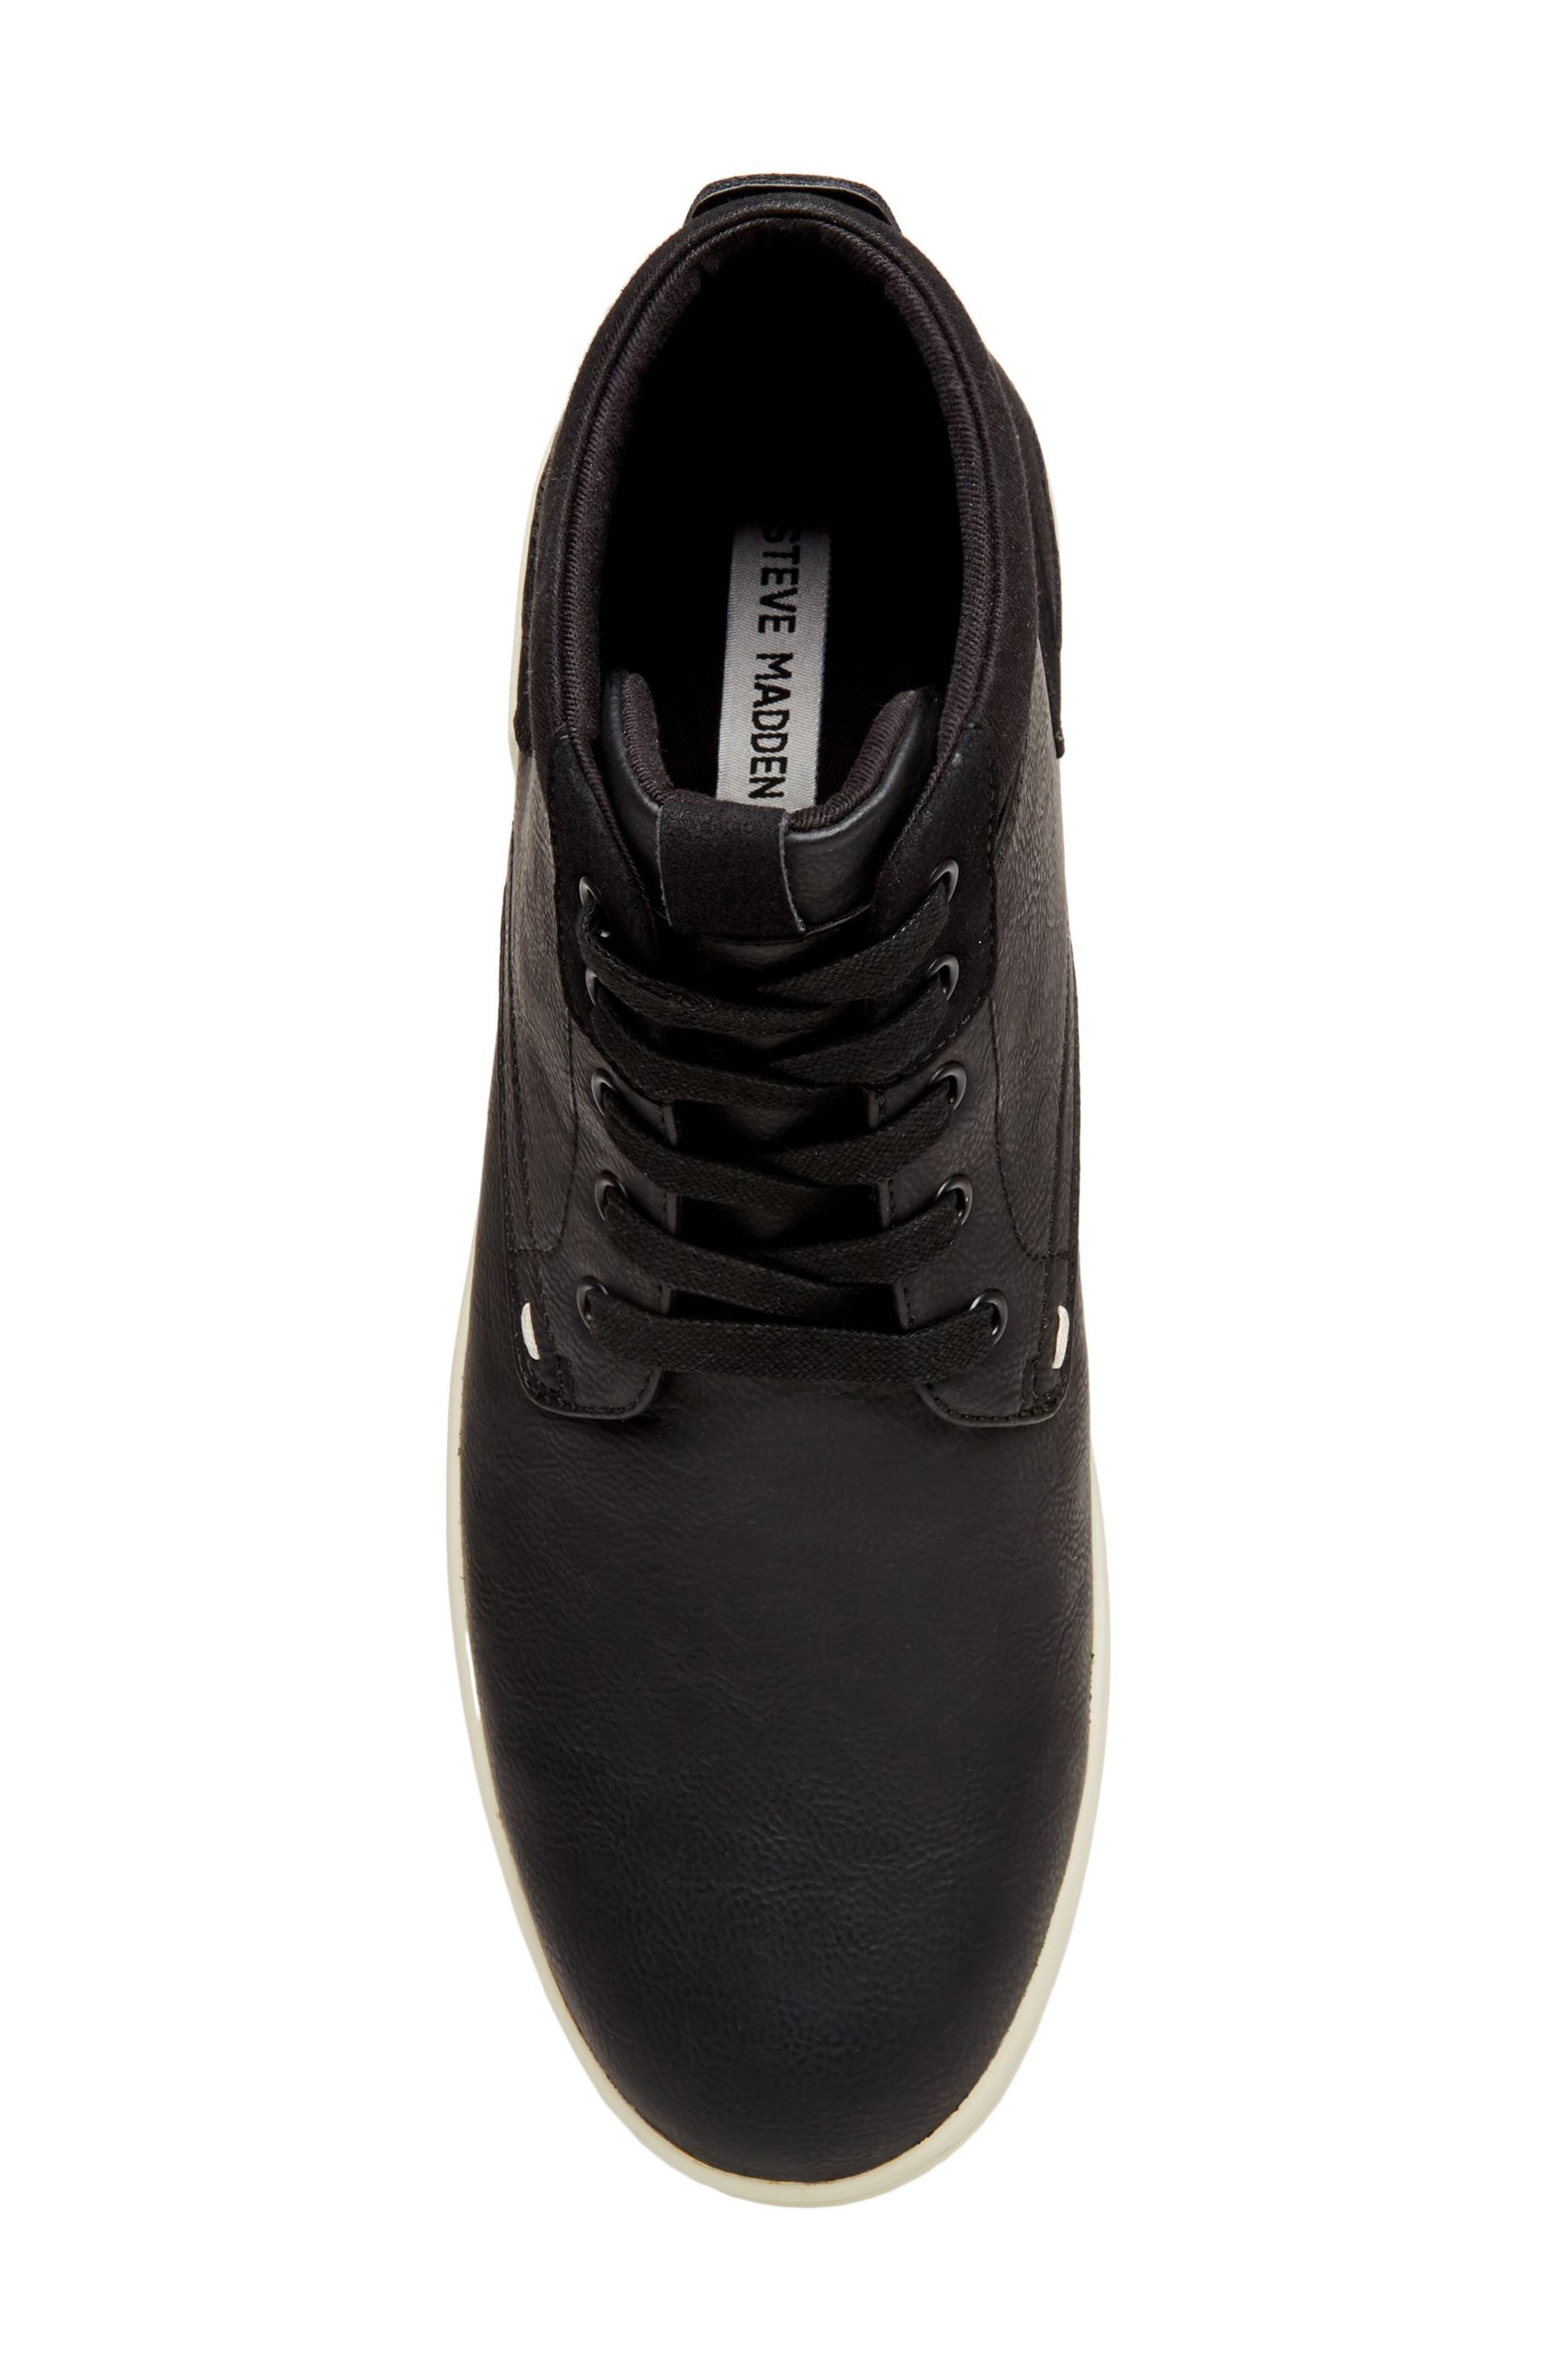 Forsyth High Top Sneaker,                             Alternate thumbnail 5, color,                             Black Leather